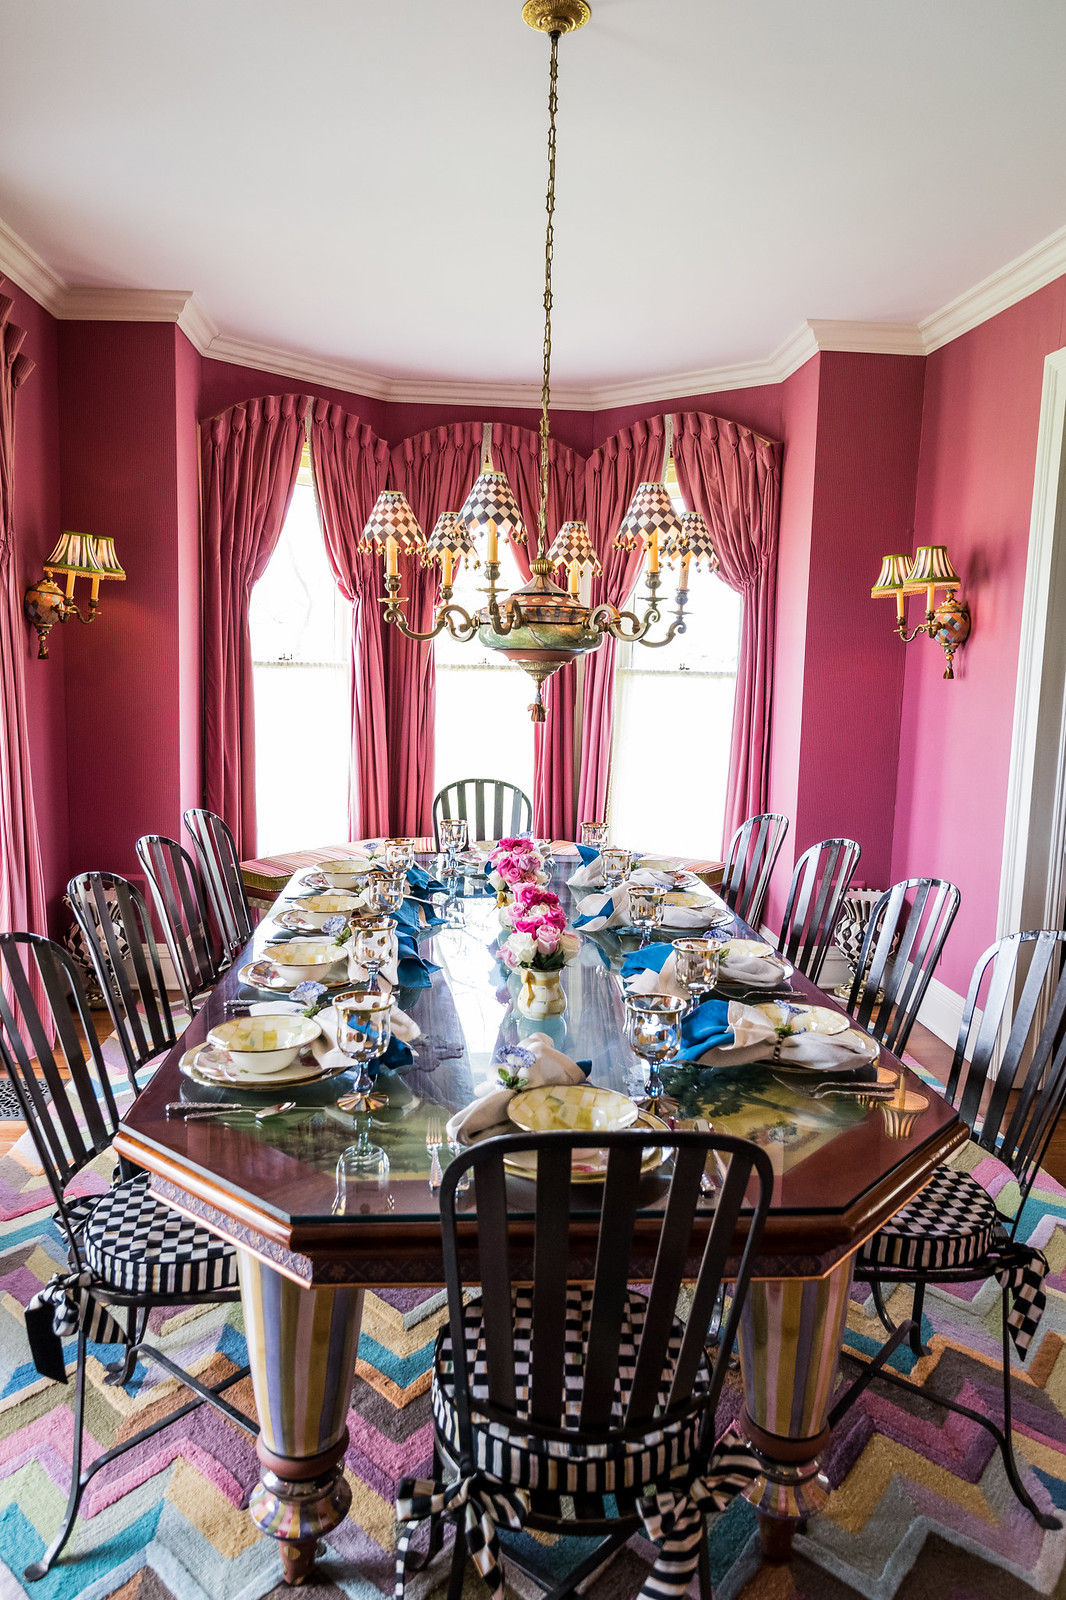 we enjoyed several meals in the Mackenzie-Childs farmhouse dining room